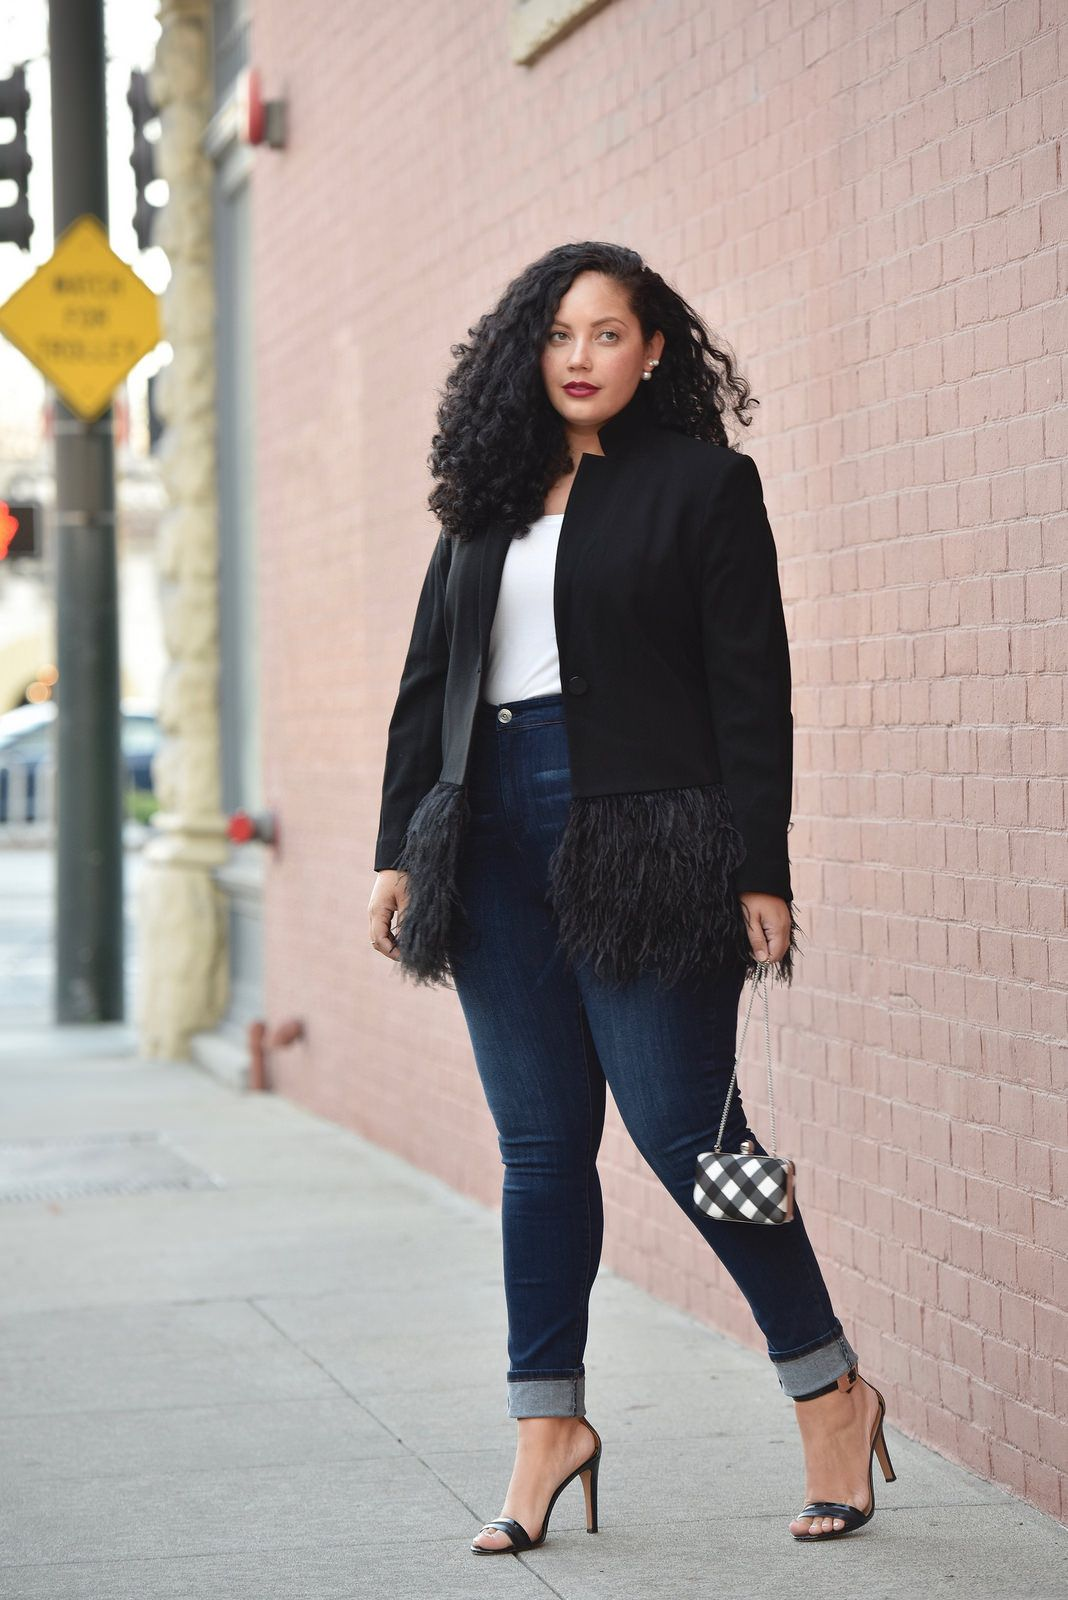 b55daef7519 Plus Size Fashion for Women. Feather Blazer and High Waist Jeans worn by Tanesha  Awasthi of GirlWithCurves.com